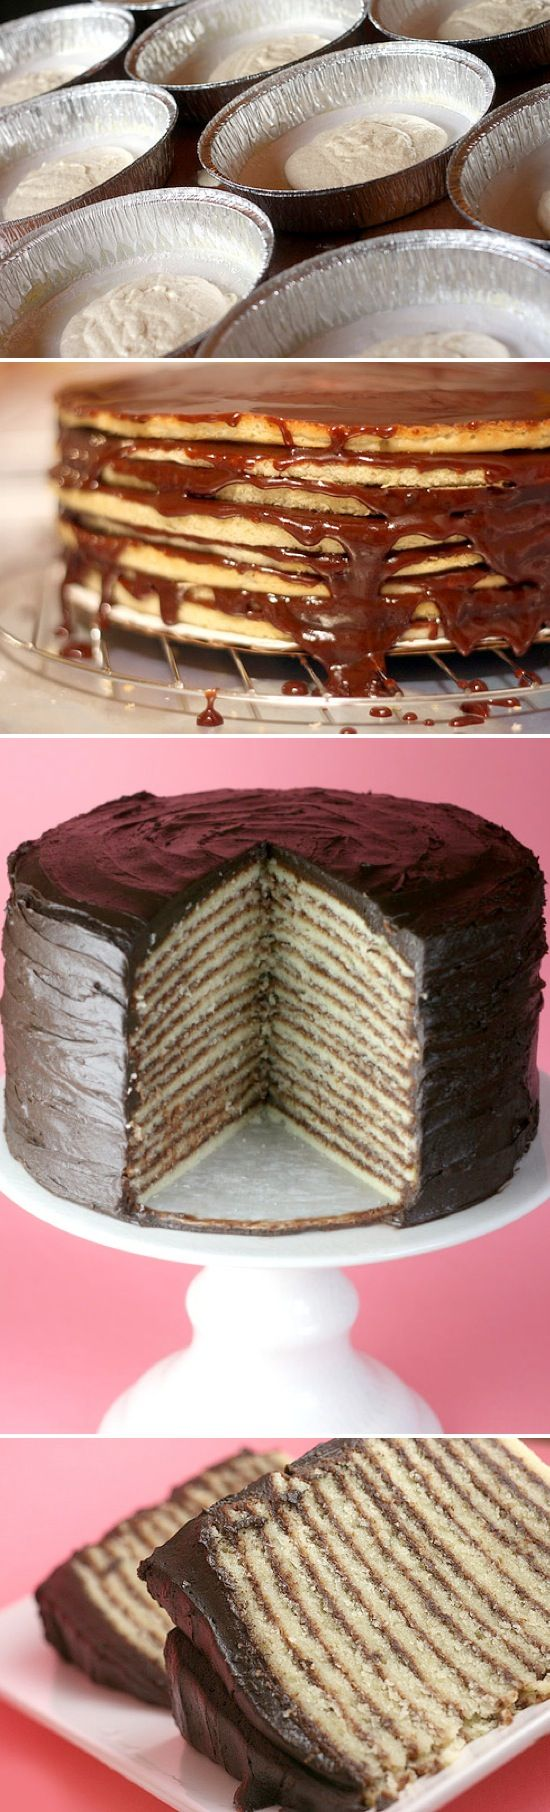 ~Lots Of Layers Cake~